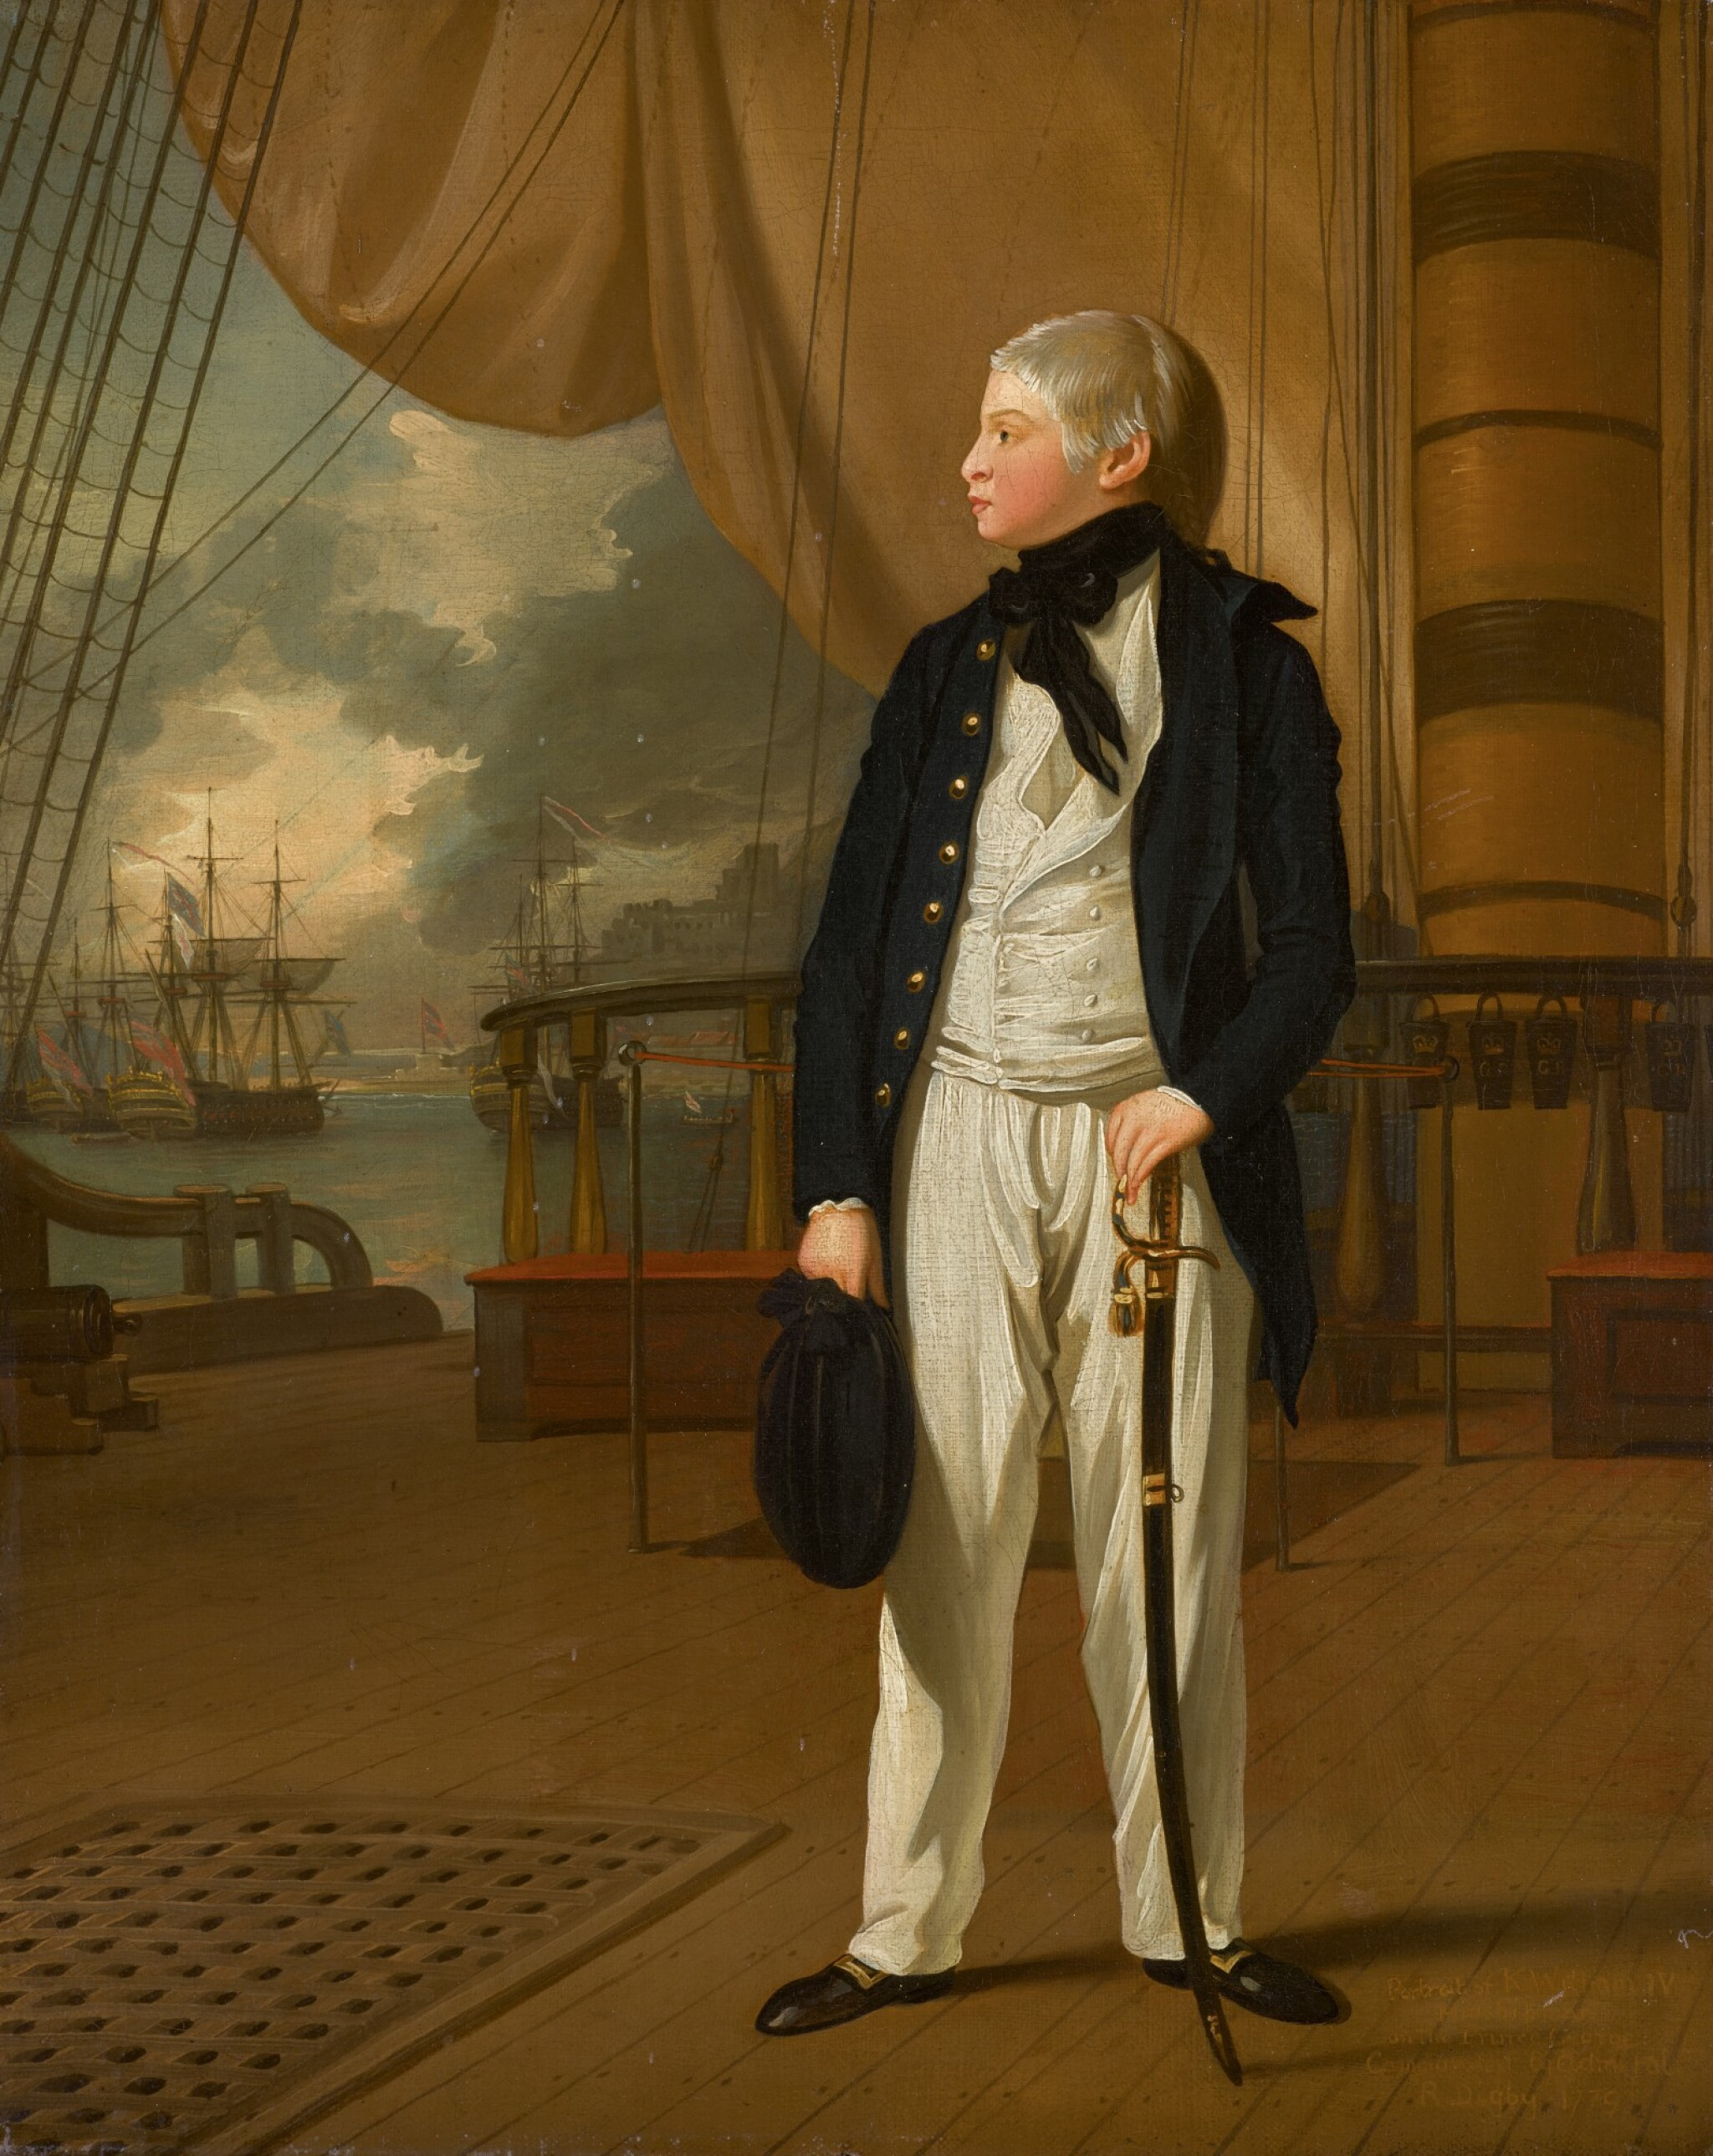 View full screen - View 1 of Lot 48. Portrait of Prince William, later King William IV of Great Britain (1765–1837), when a midshipman, in naval uniform standing on the deck of HMS Prince George | 《身穿海軍服、站在威爾斯親王號戰艦上、時為見習船員的威廉王子肖像,後為英王威廉四世(1765–1837年)》.